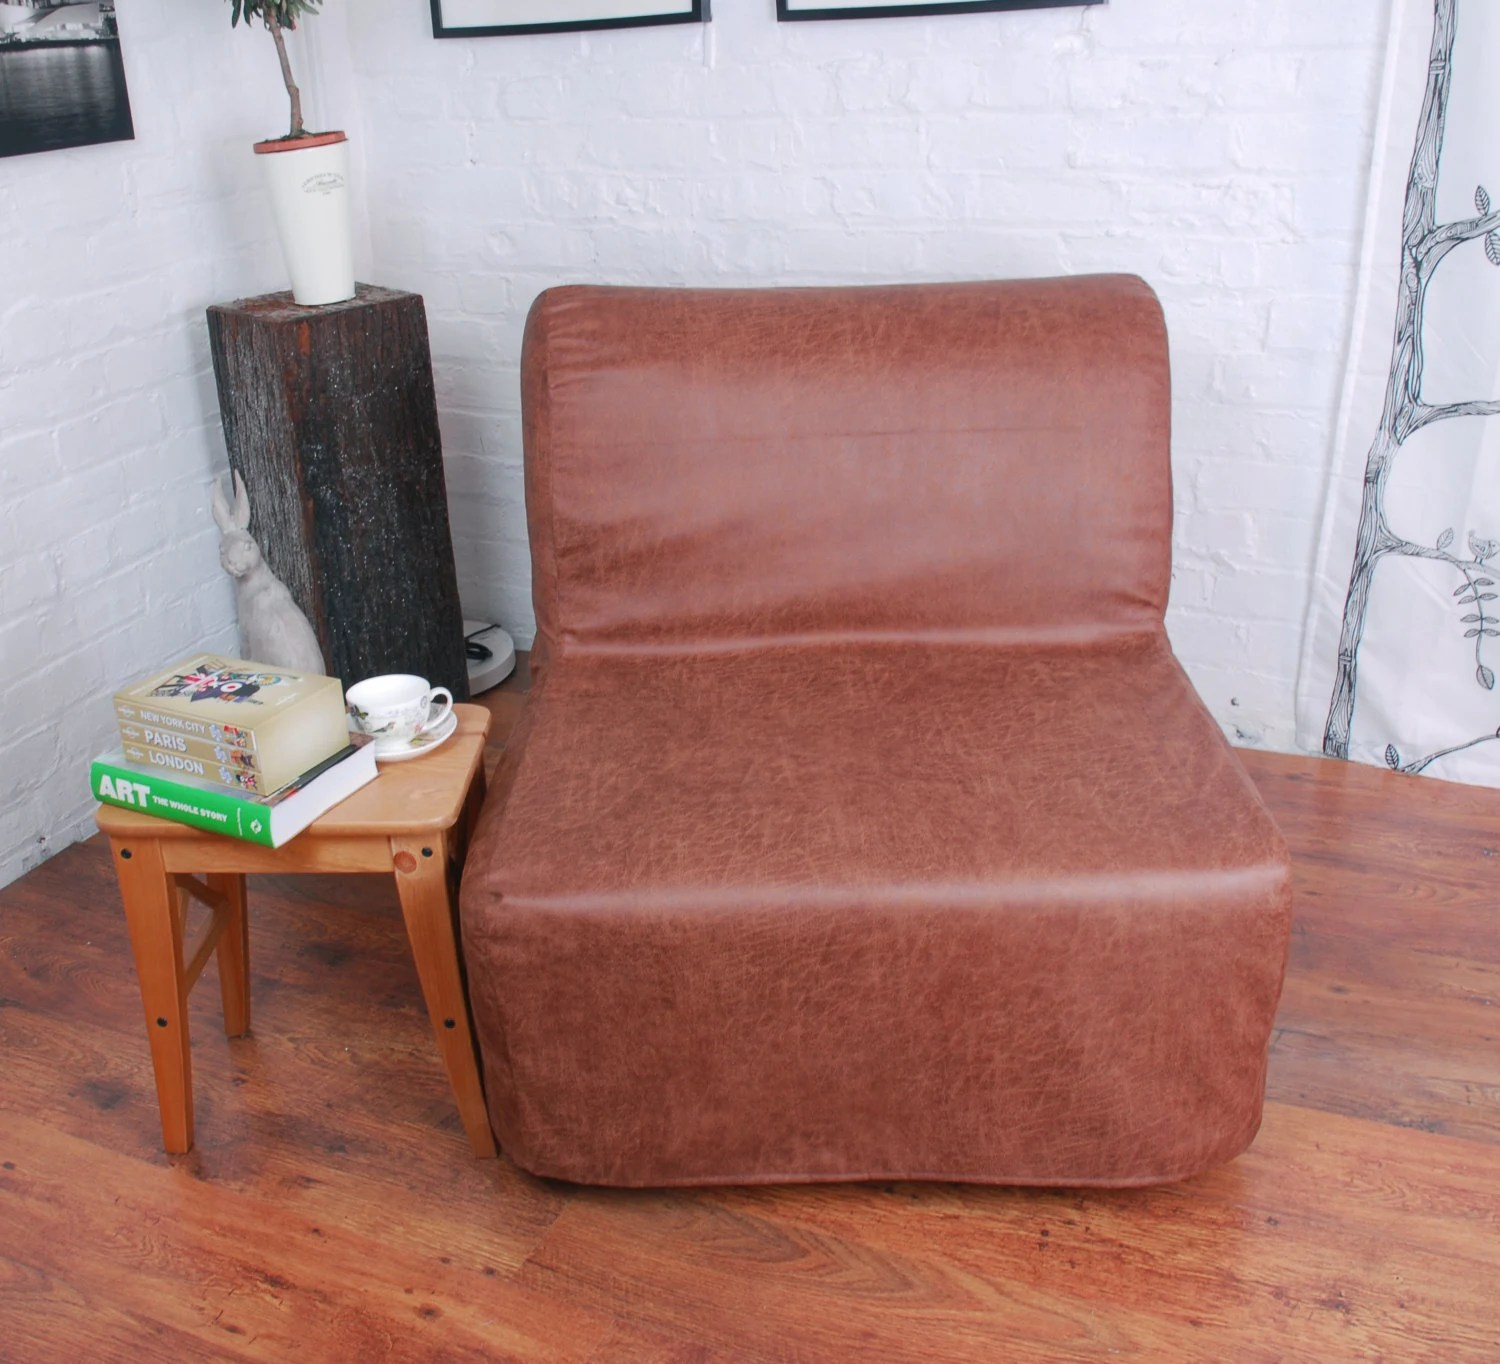 Ikea Solsta Bettsofa Deutschland Ikea Lycksele Chair Or Double Sofa Bed Cover In Distressed Vintage Look Leather Look Fabric